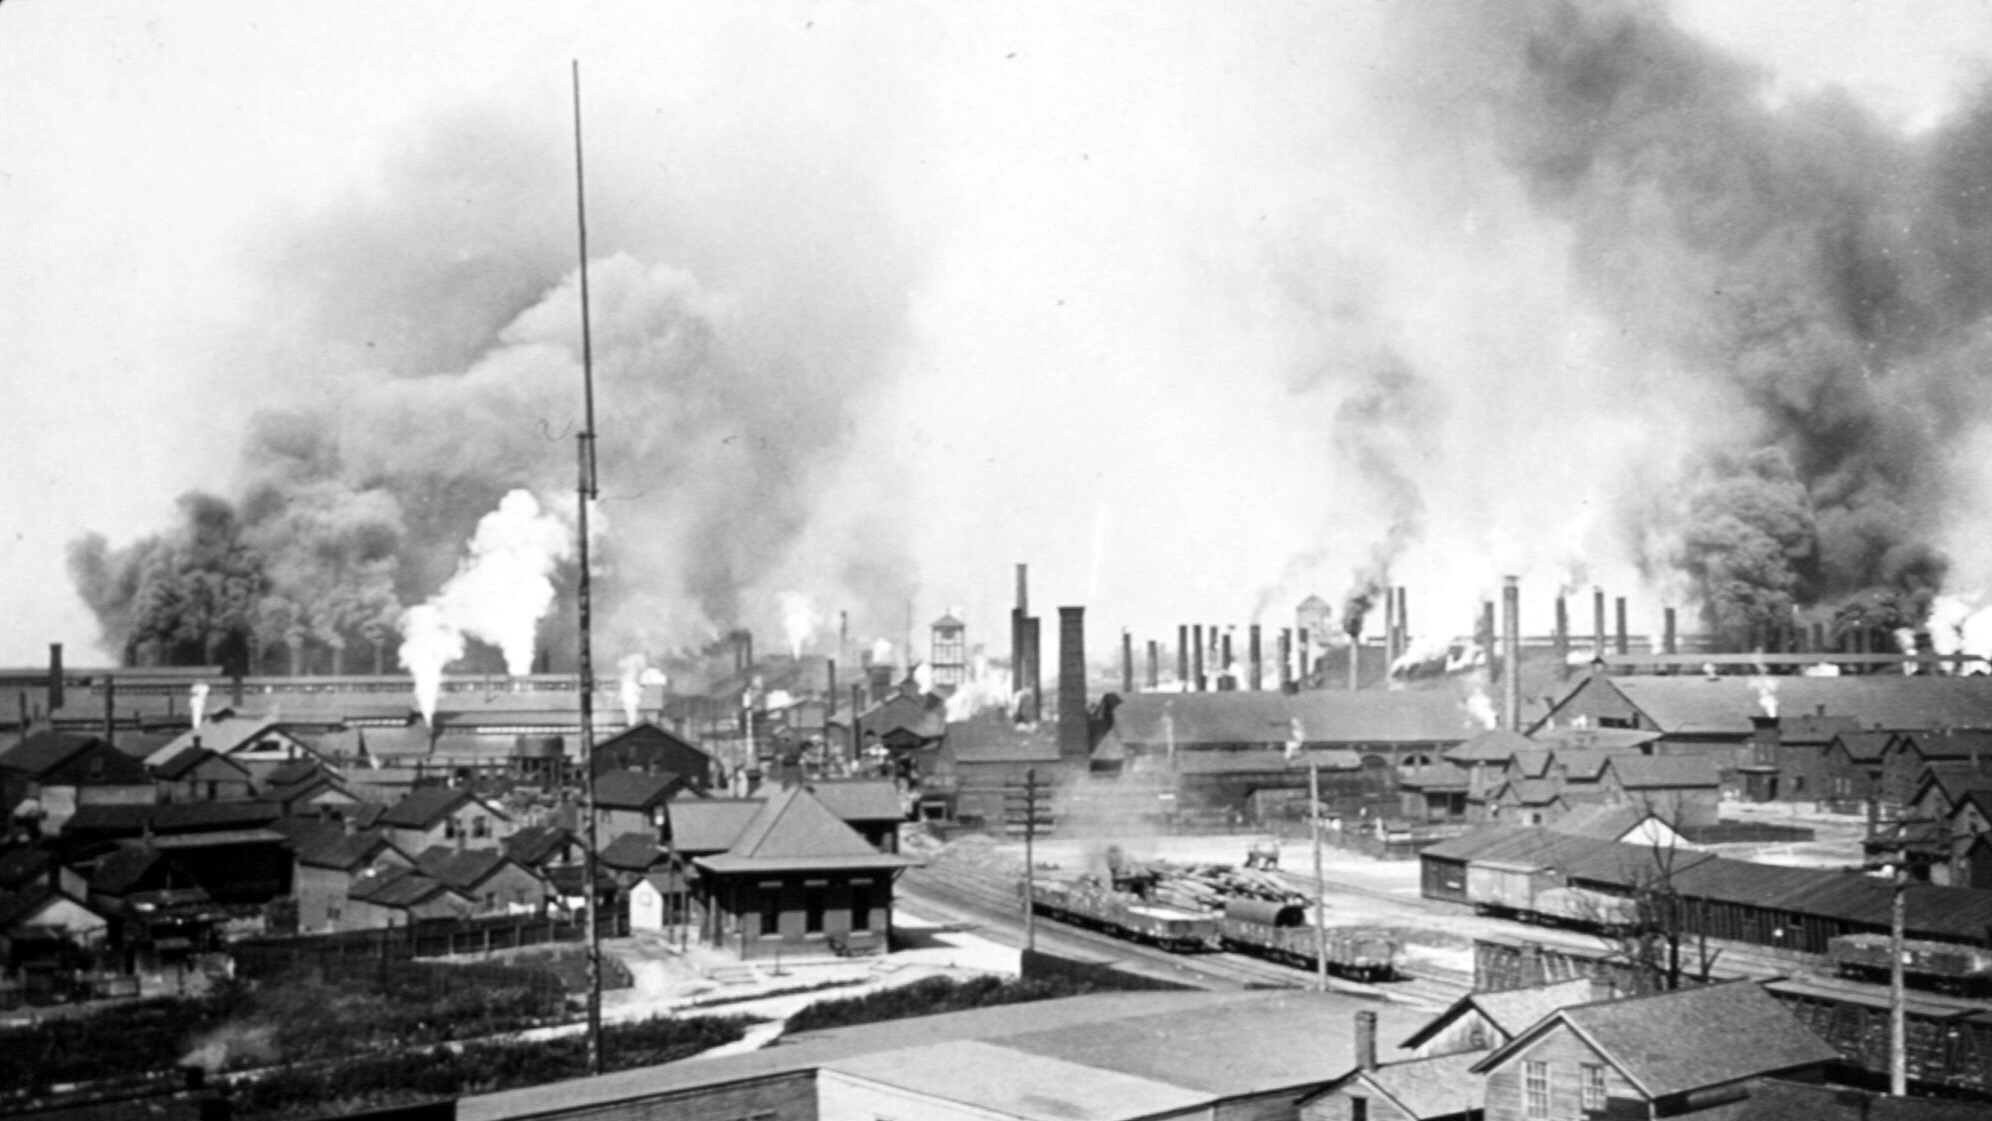 The vast Cleveland Rolling Mills in Cleveland is shown in this turn-of-the century photo. Once the largest employer in the city, the works became Republic Steel later in the century. Now, as 2000 approaches, a much smaller LTV steel is all that is left. (